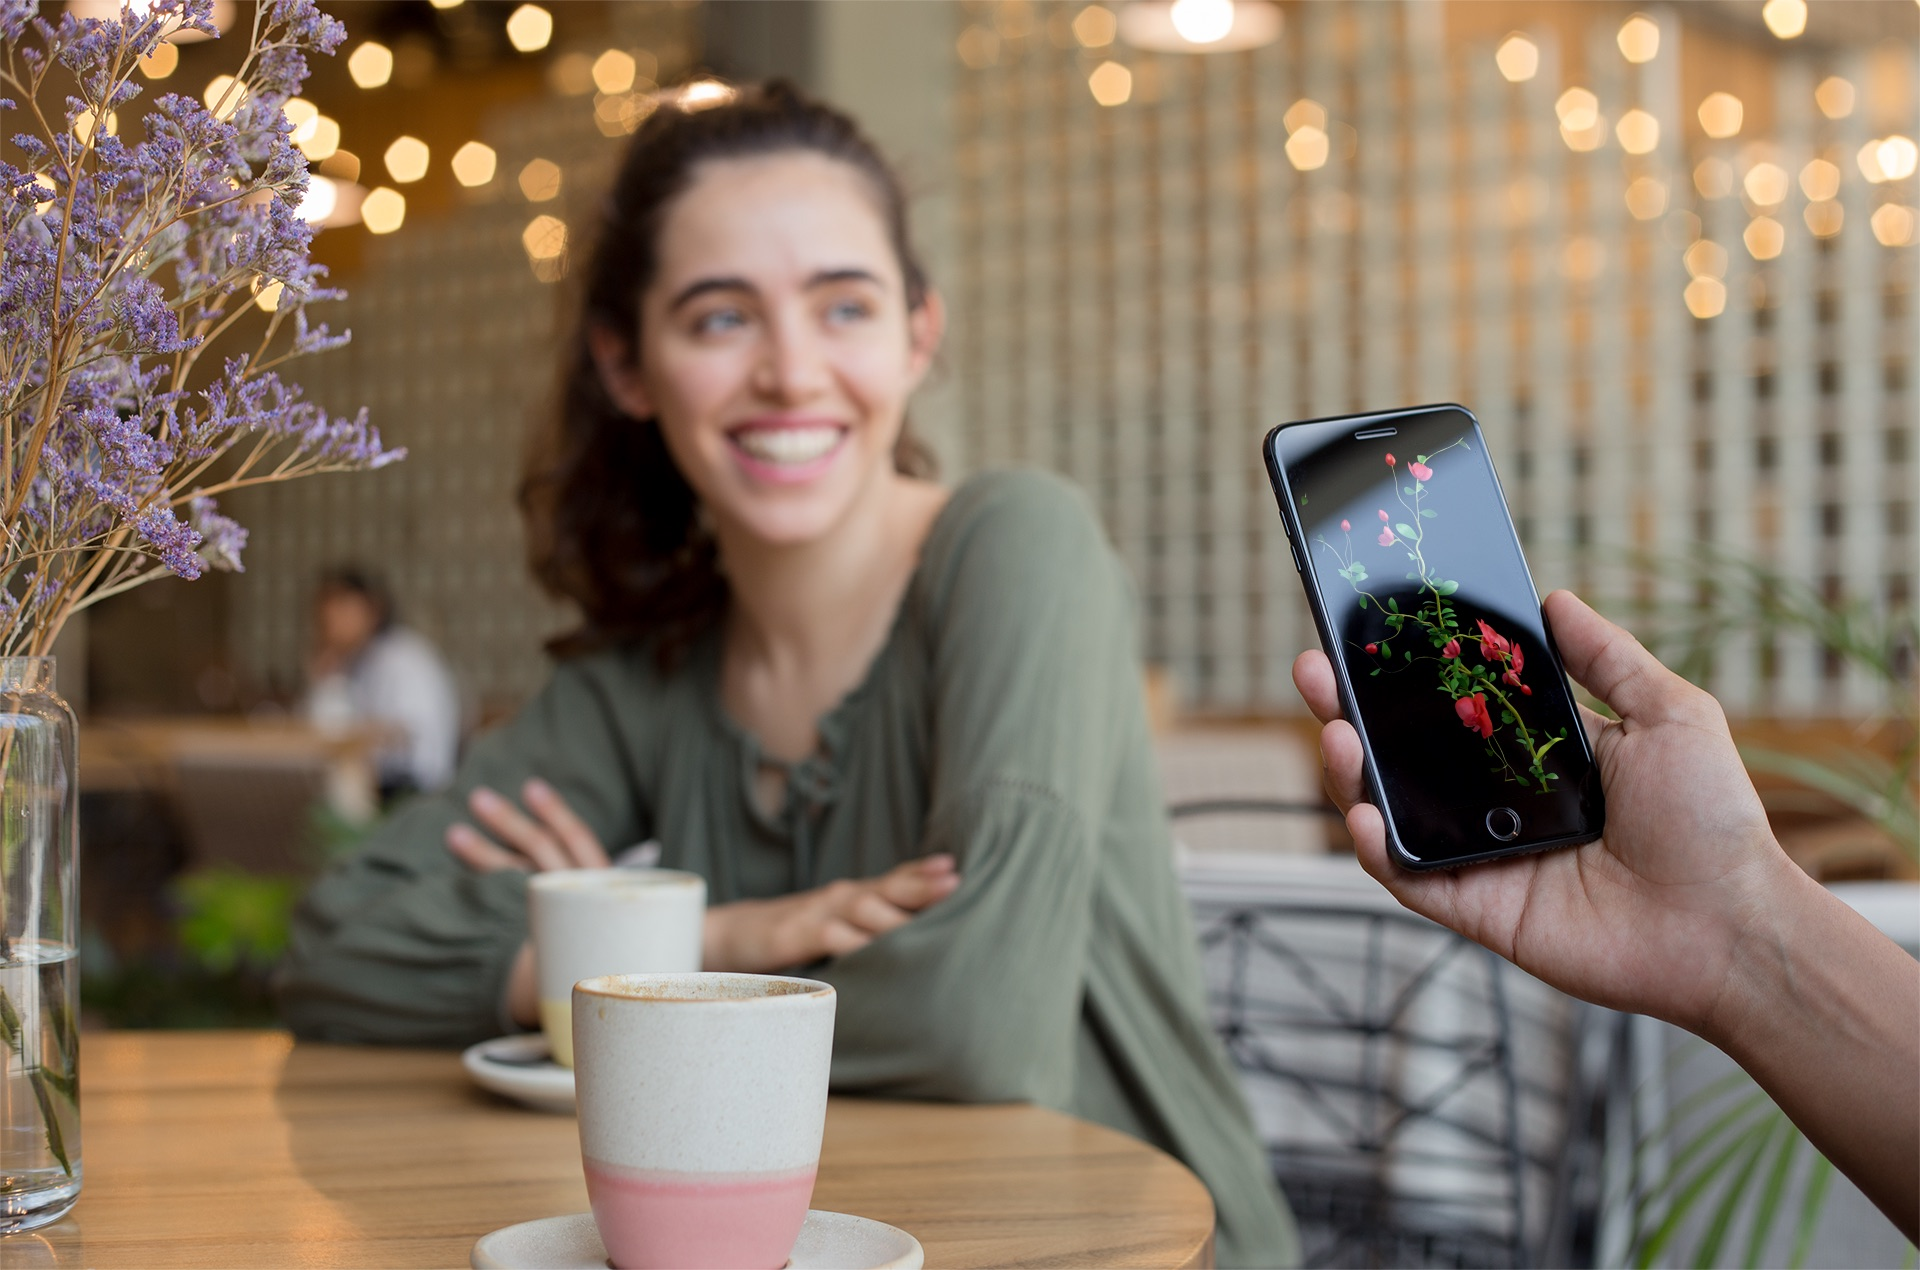 space-gray-iphone-8-plus-mockup-featuring-a-man-with-a-girl-at-a-coffee-shop-a21265+copy.jpg